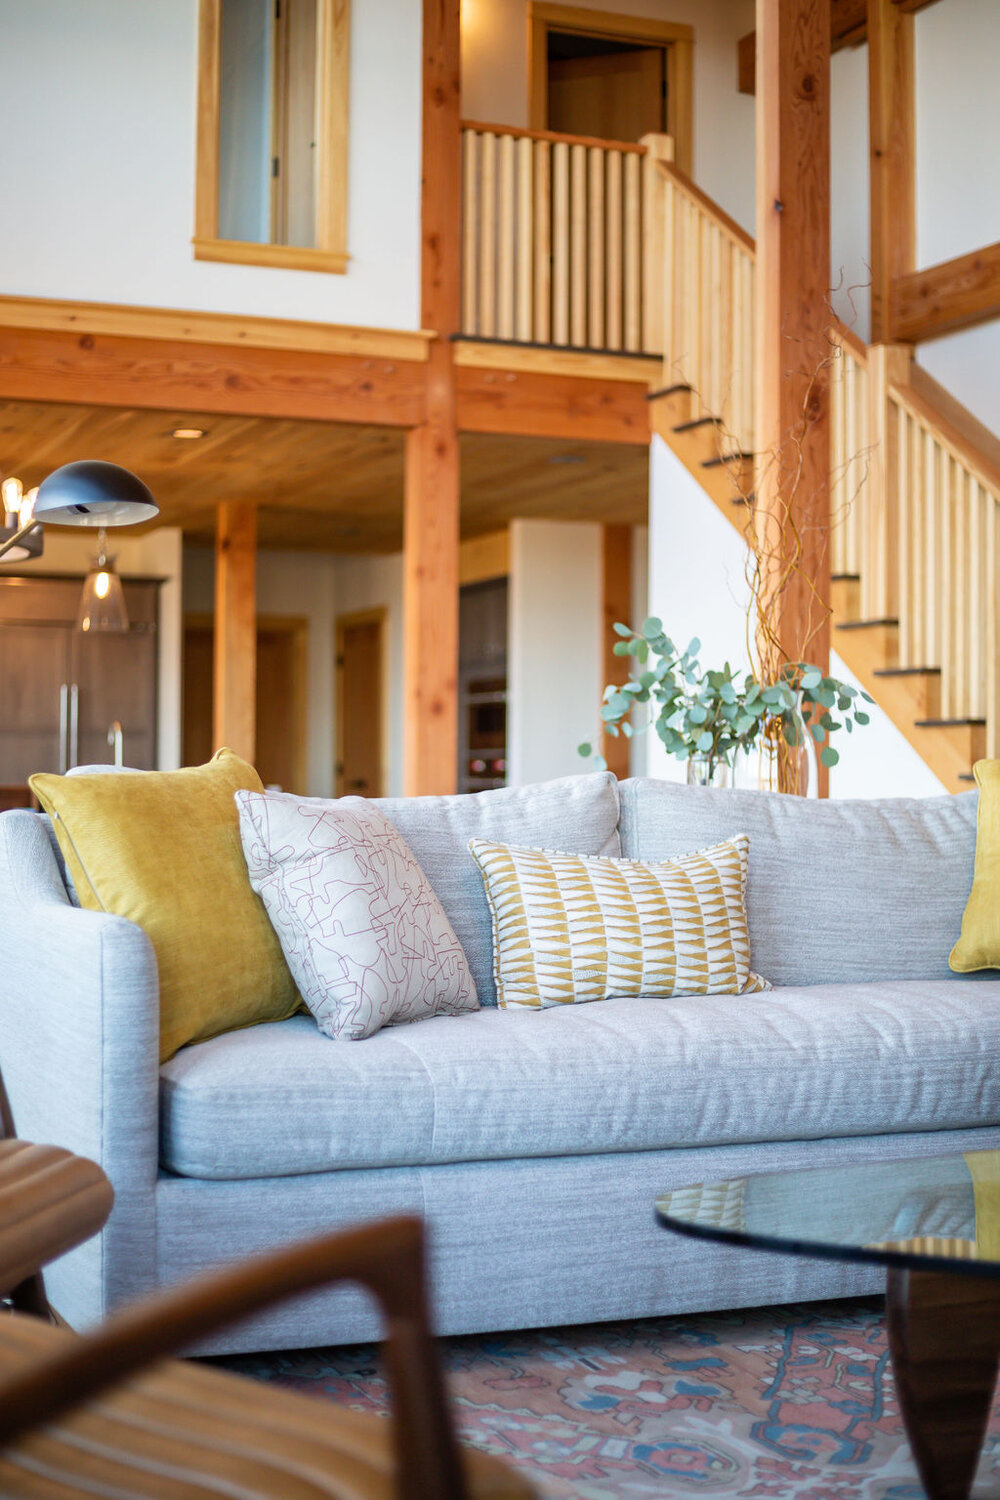 Squam Residence – traditional exterior and modern furnishings